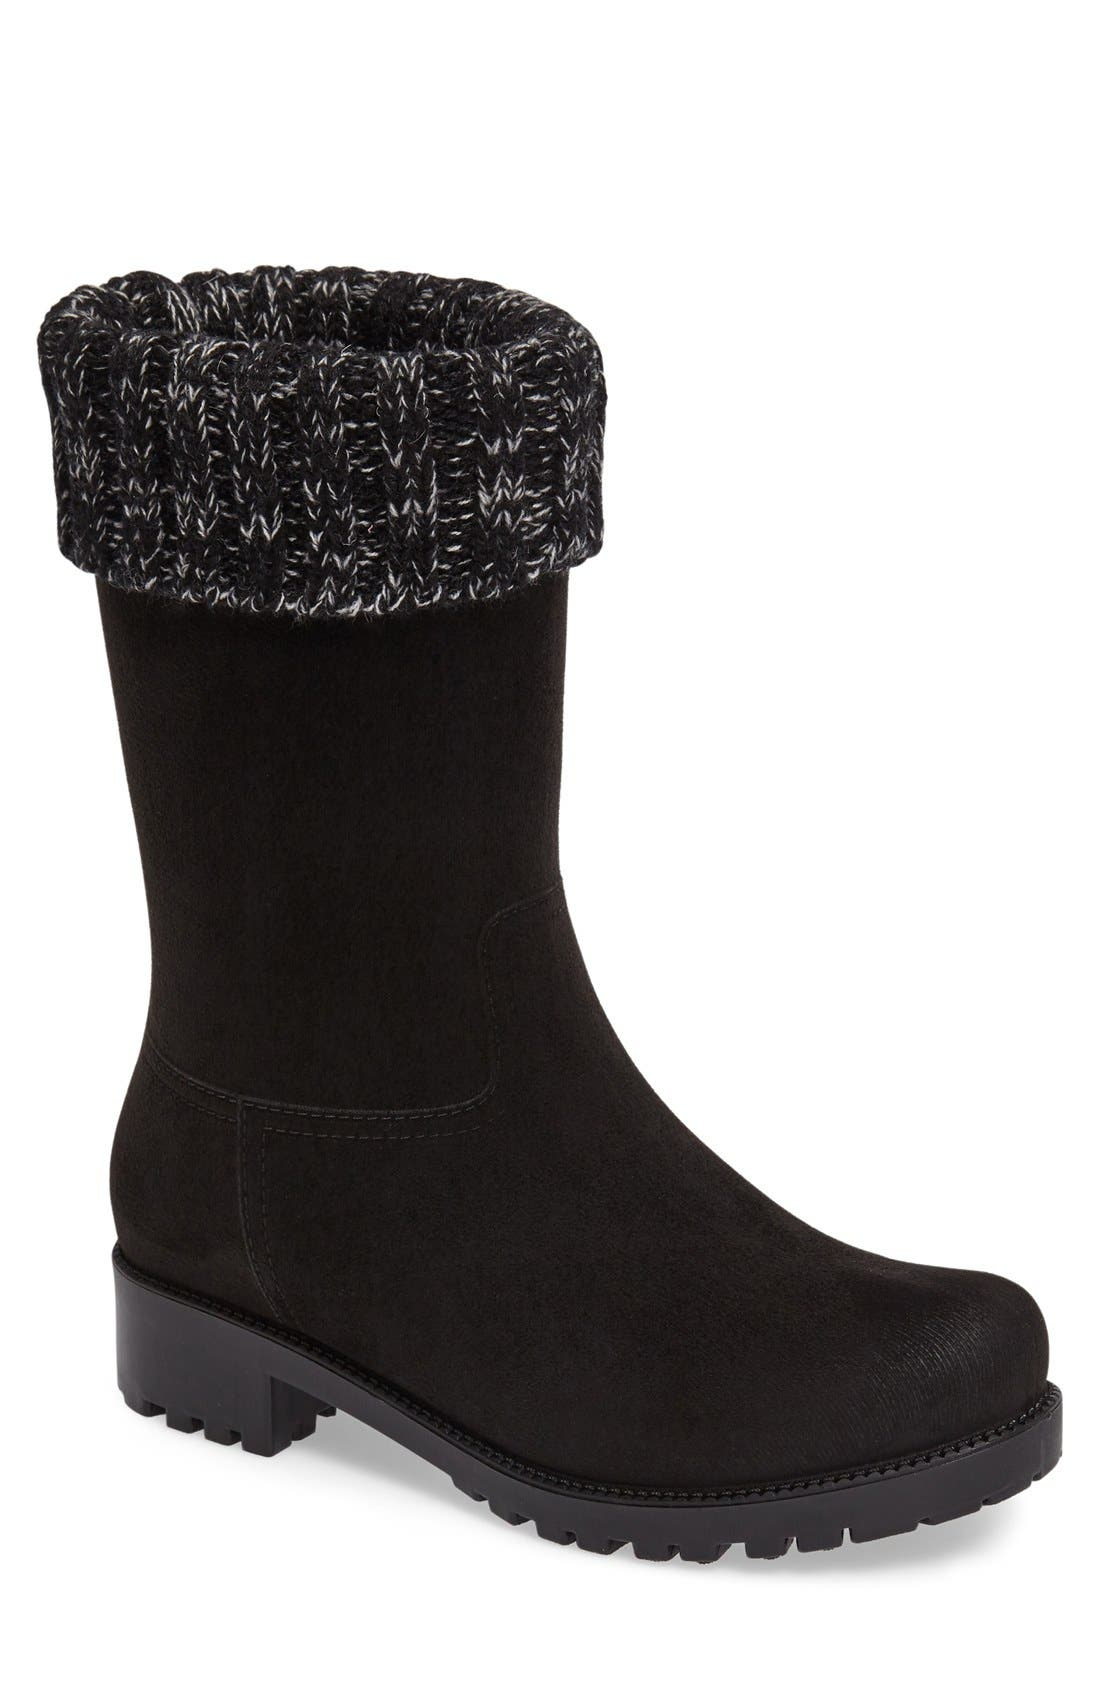 Shelby Knit Cuff Waterproof Boot,                         Main,                         color, BLACK